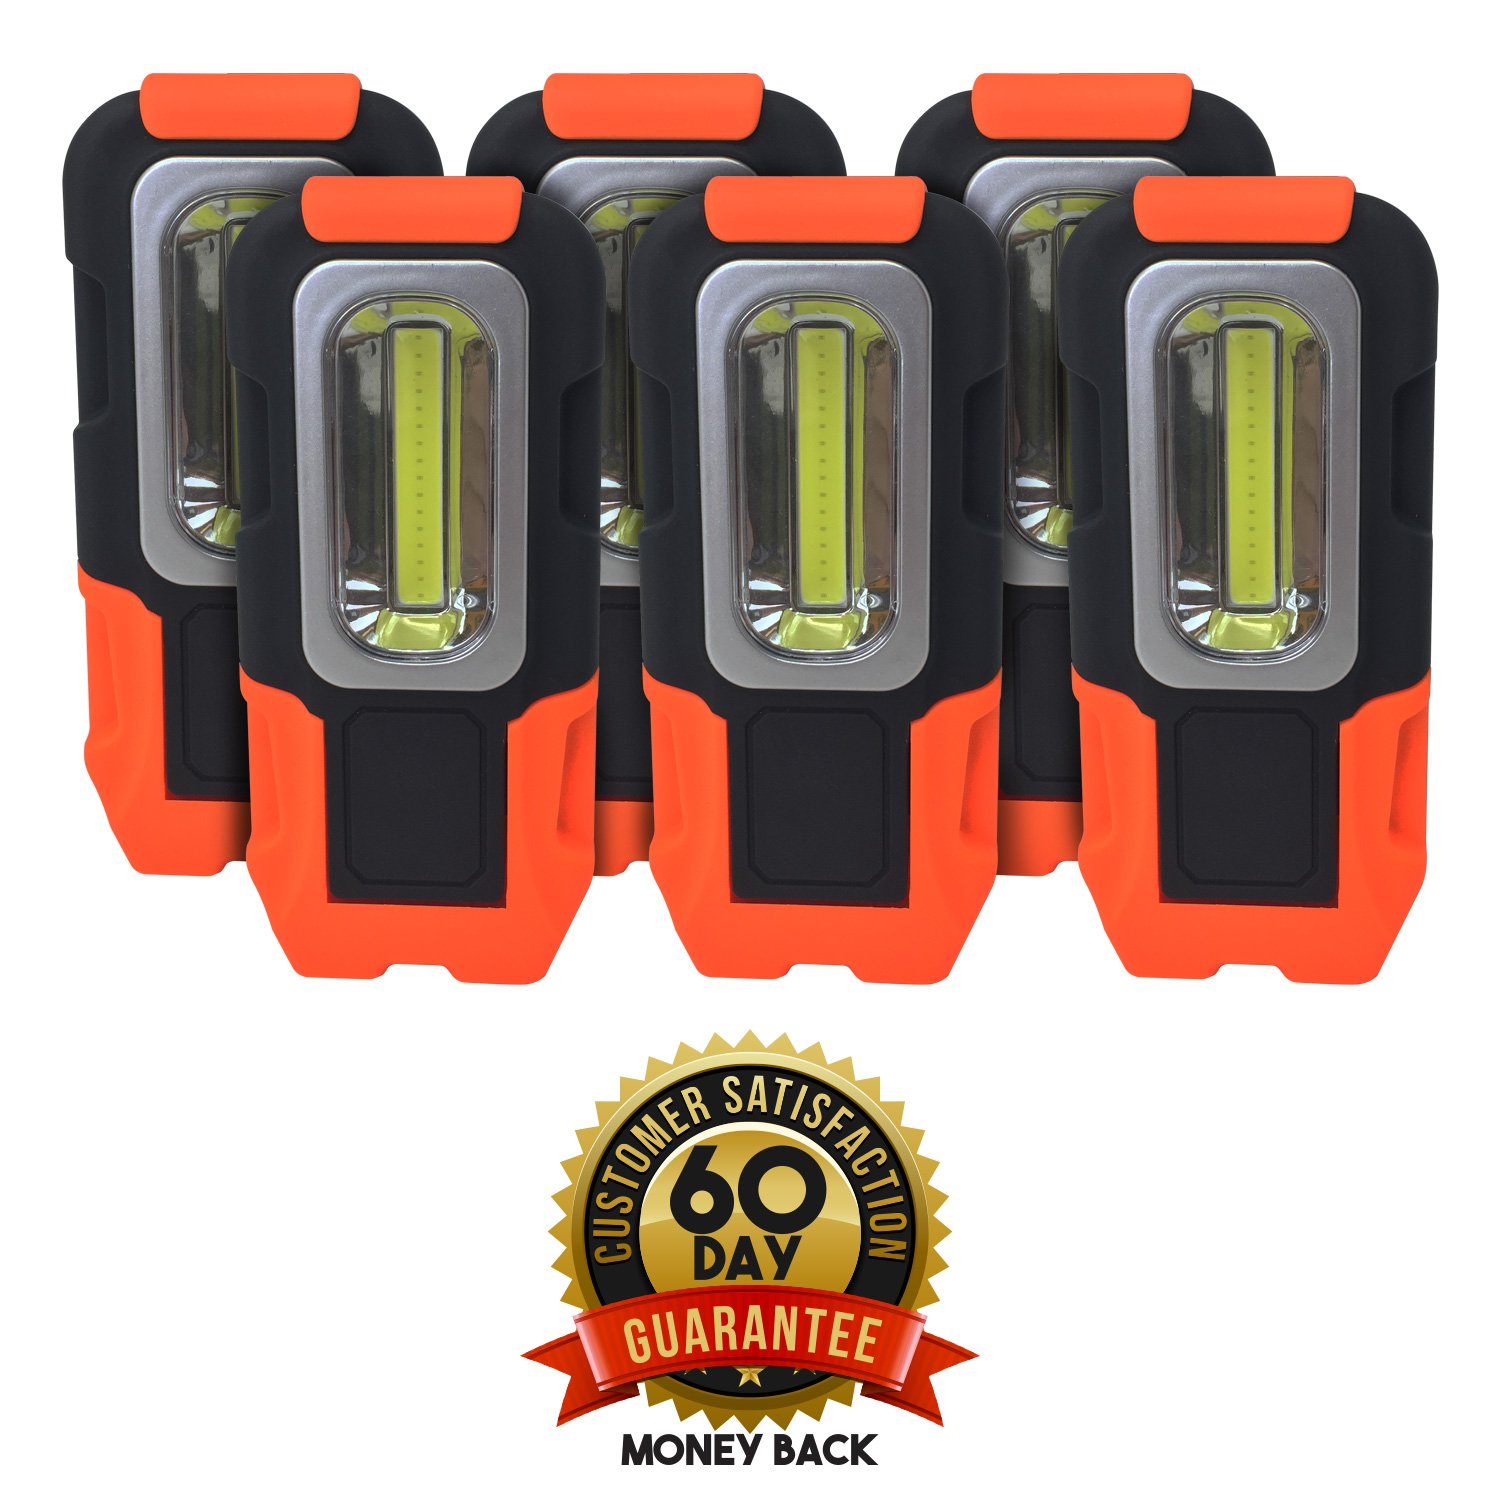 HAYLO Stubby Mini Floodlight (6 Pack) by HAYLO